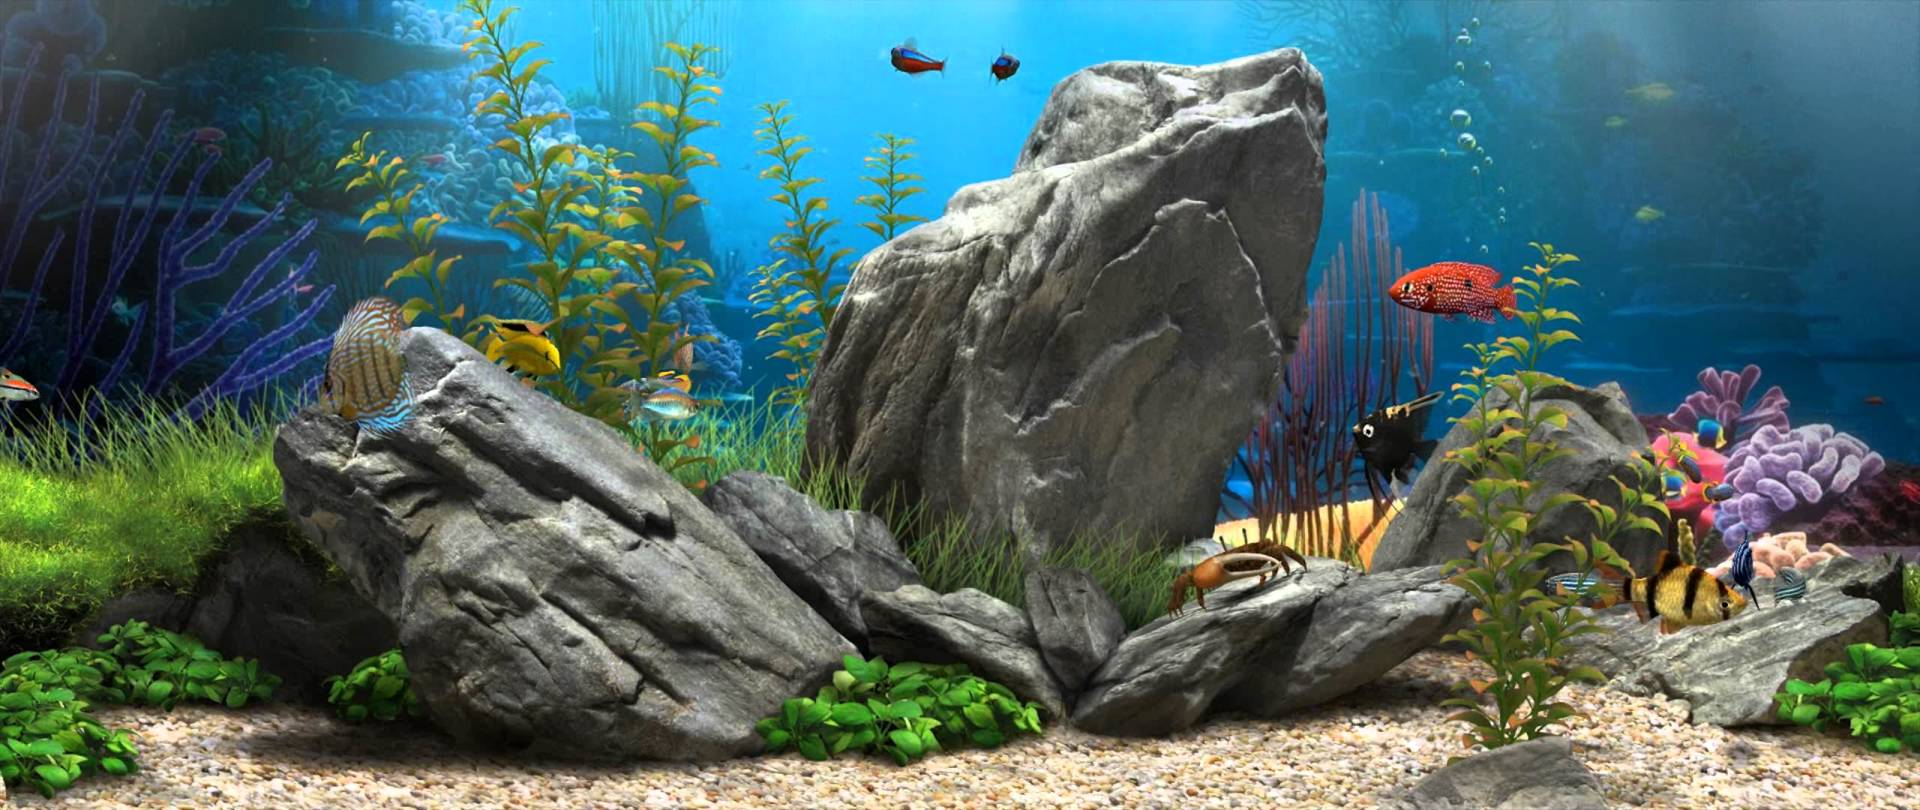 55+ Fish Tank Wallpapers